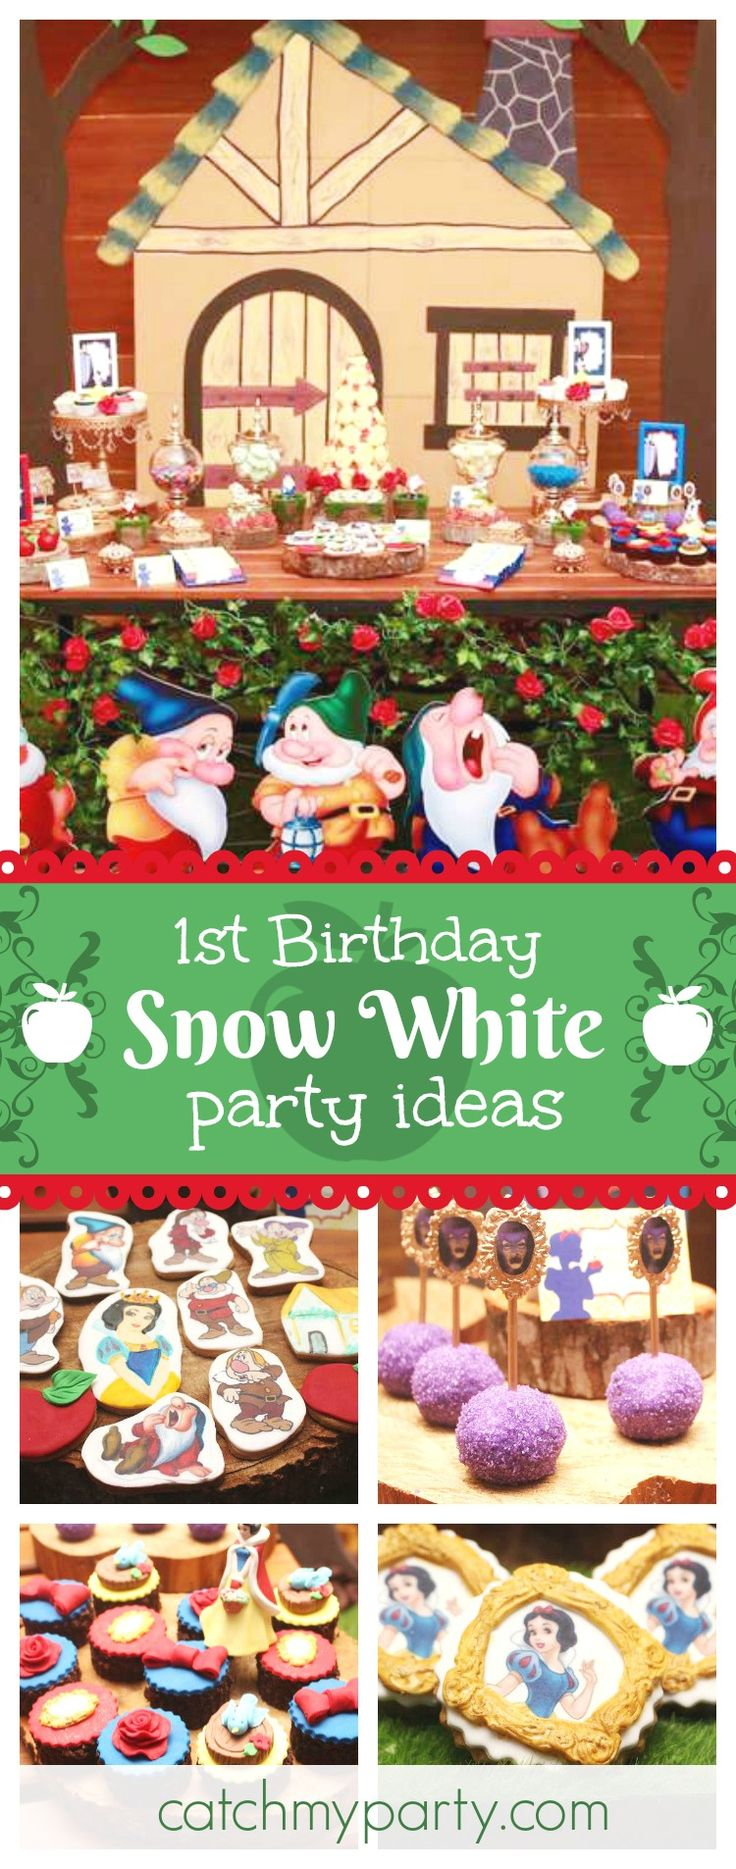 Be enchanted by this fabulous Snow White 1st Birthday party! The cupcakes are beautiful!! See more party ideas and share yours at CatchMyParty.com